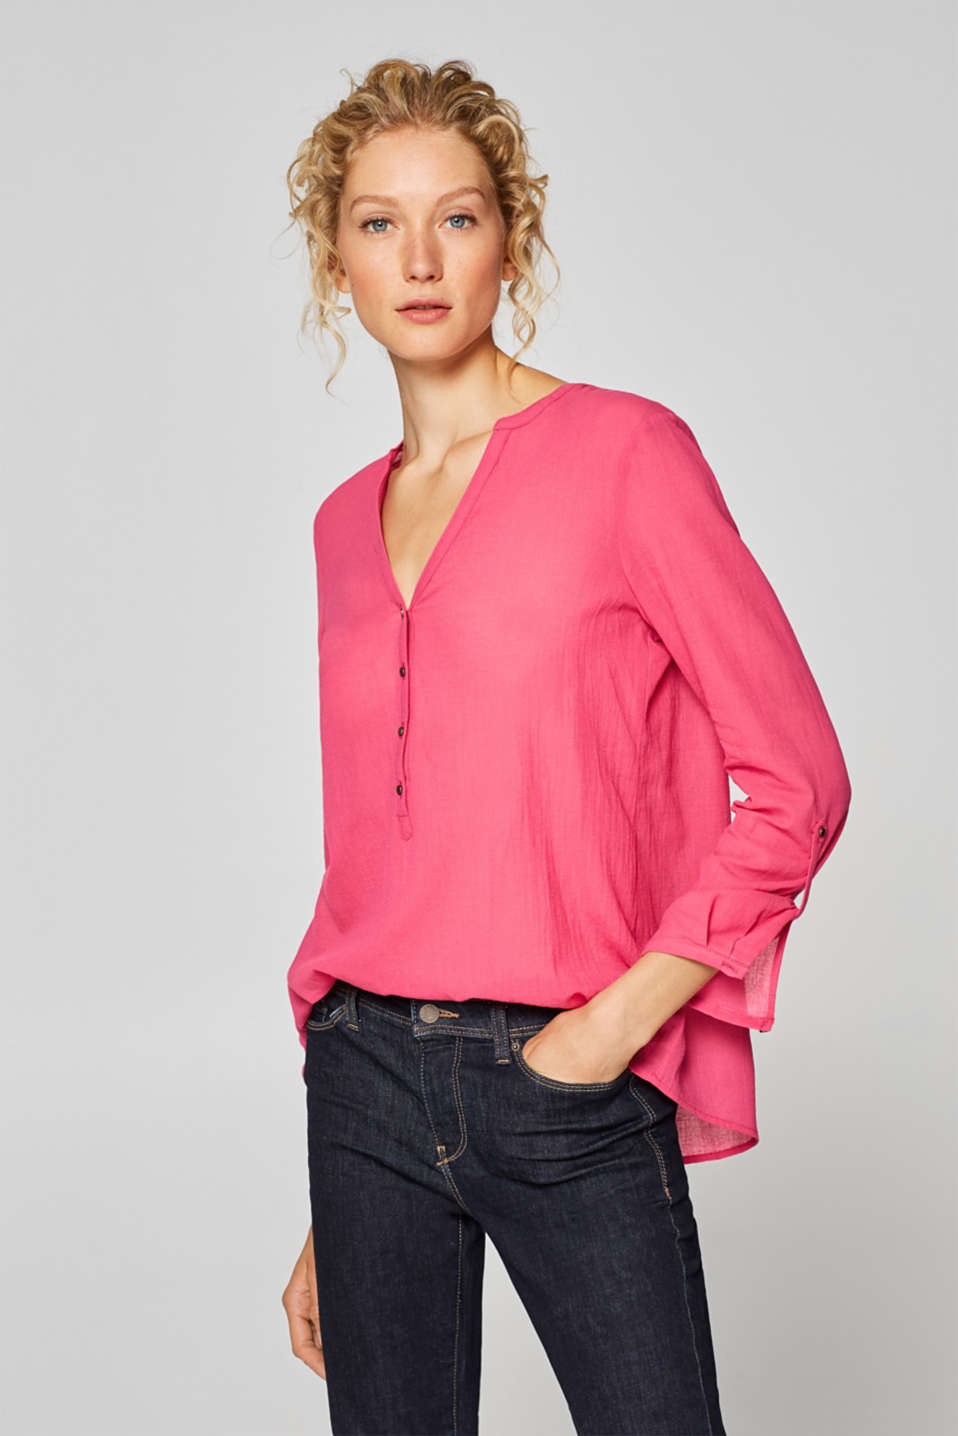 Esprit - Henley blouse with turn-up sleeves